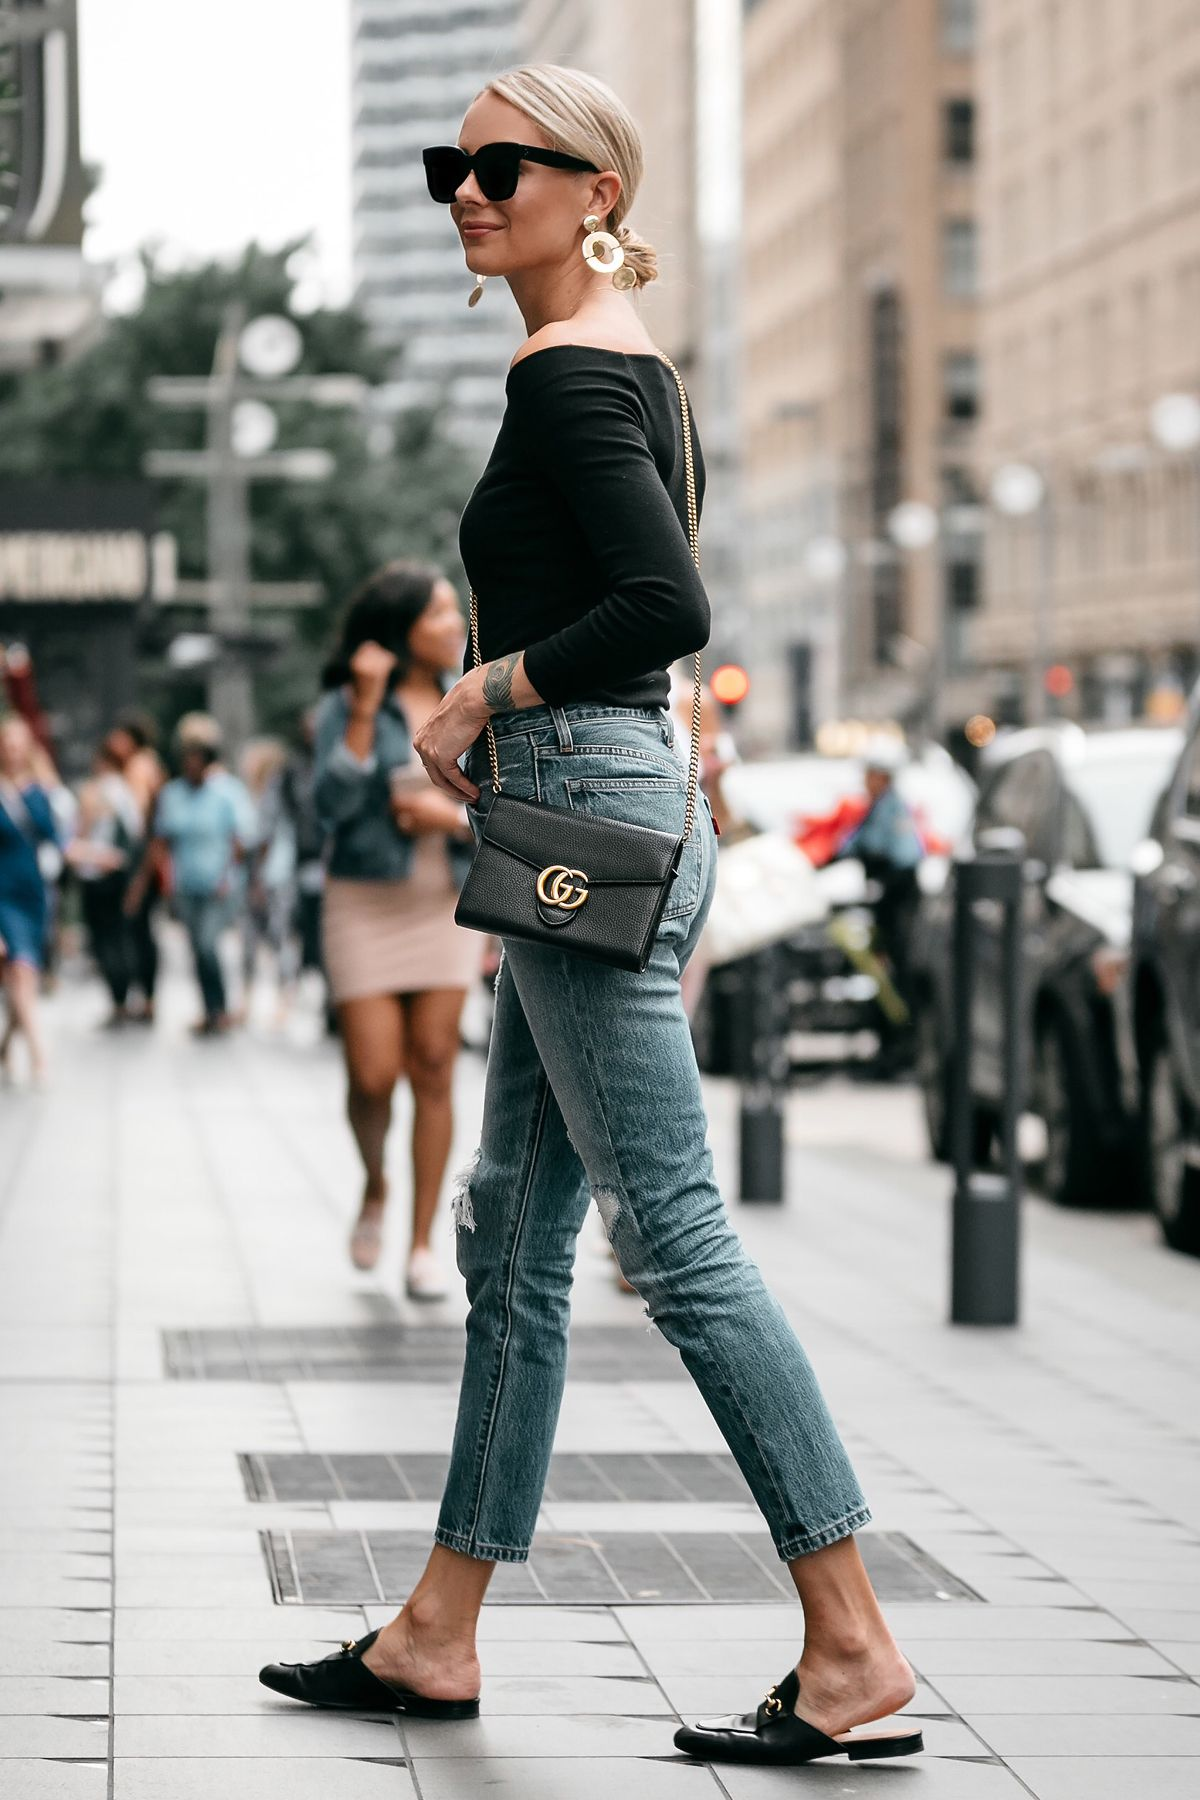 ed9e8d5014 Blonde Woman Wearing Jcrew black off the shoulder top Levis Denim Ripped  Jeans Gucci Marmont Handbag Gucci Princetown Loafer Mules Fashion Jackson  Dallas ...